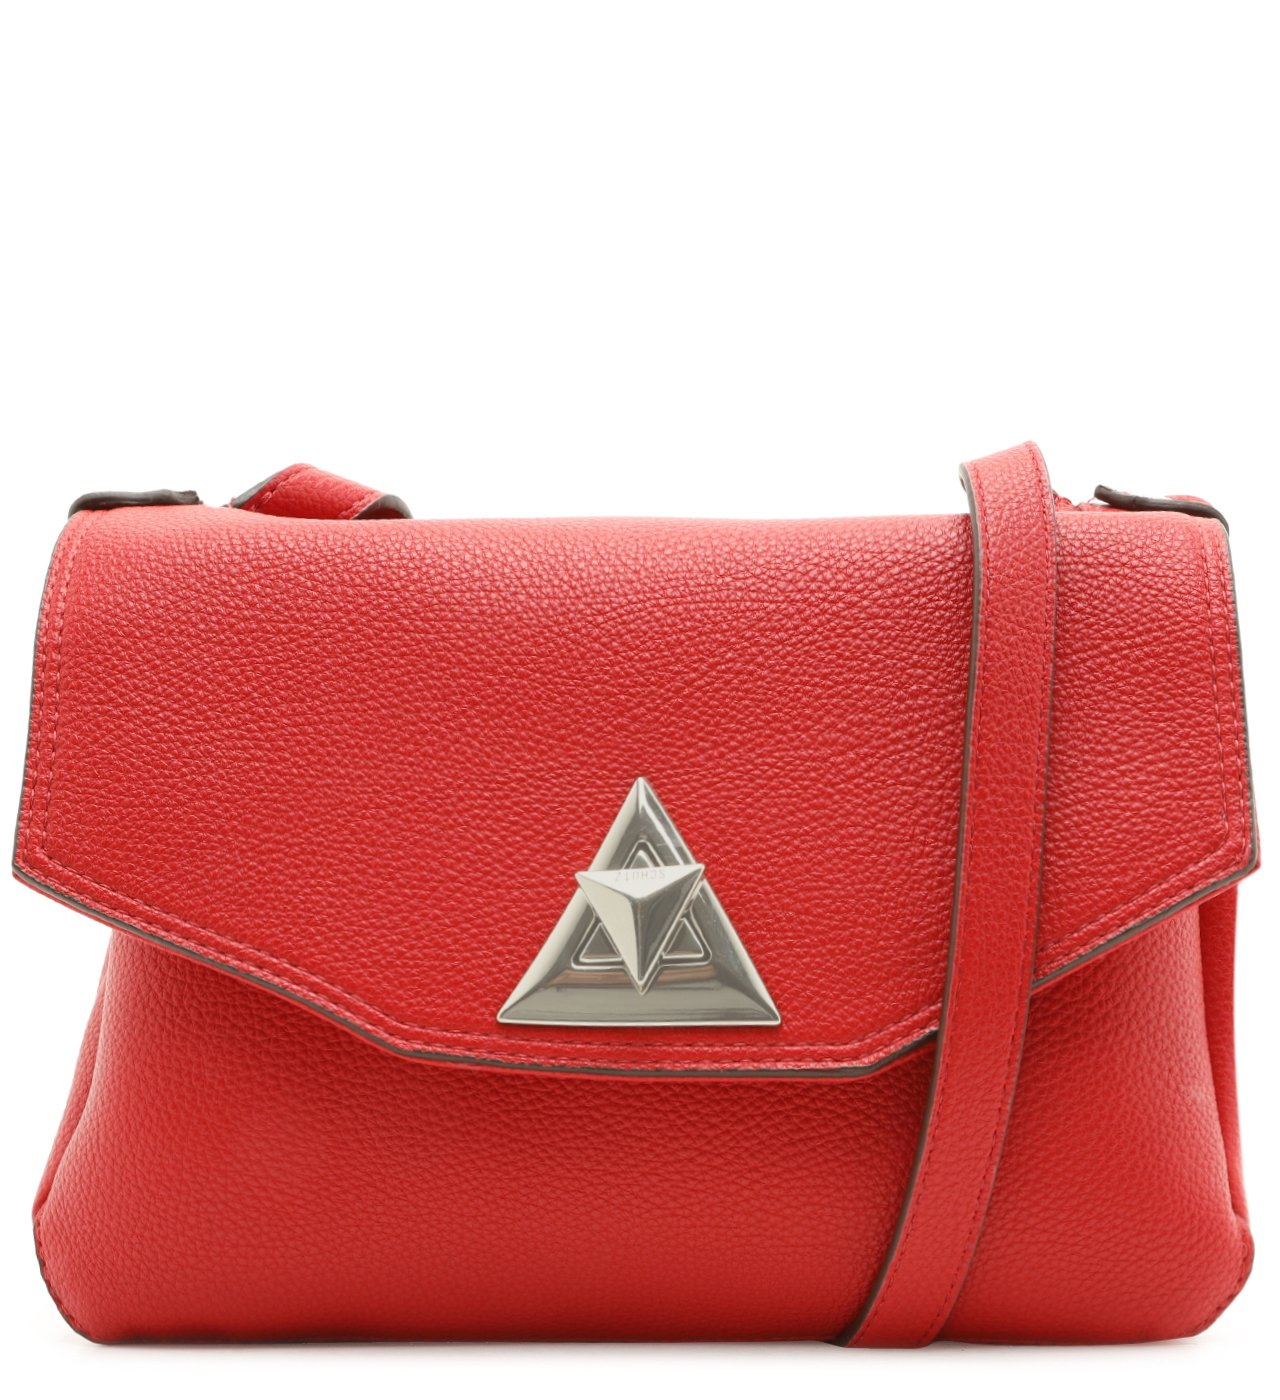 Mini Satchel Bag Leona Red | Schutz